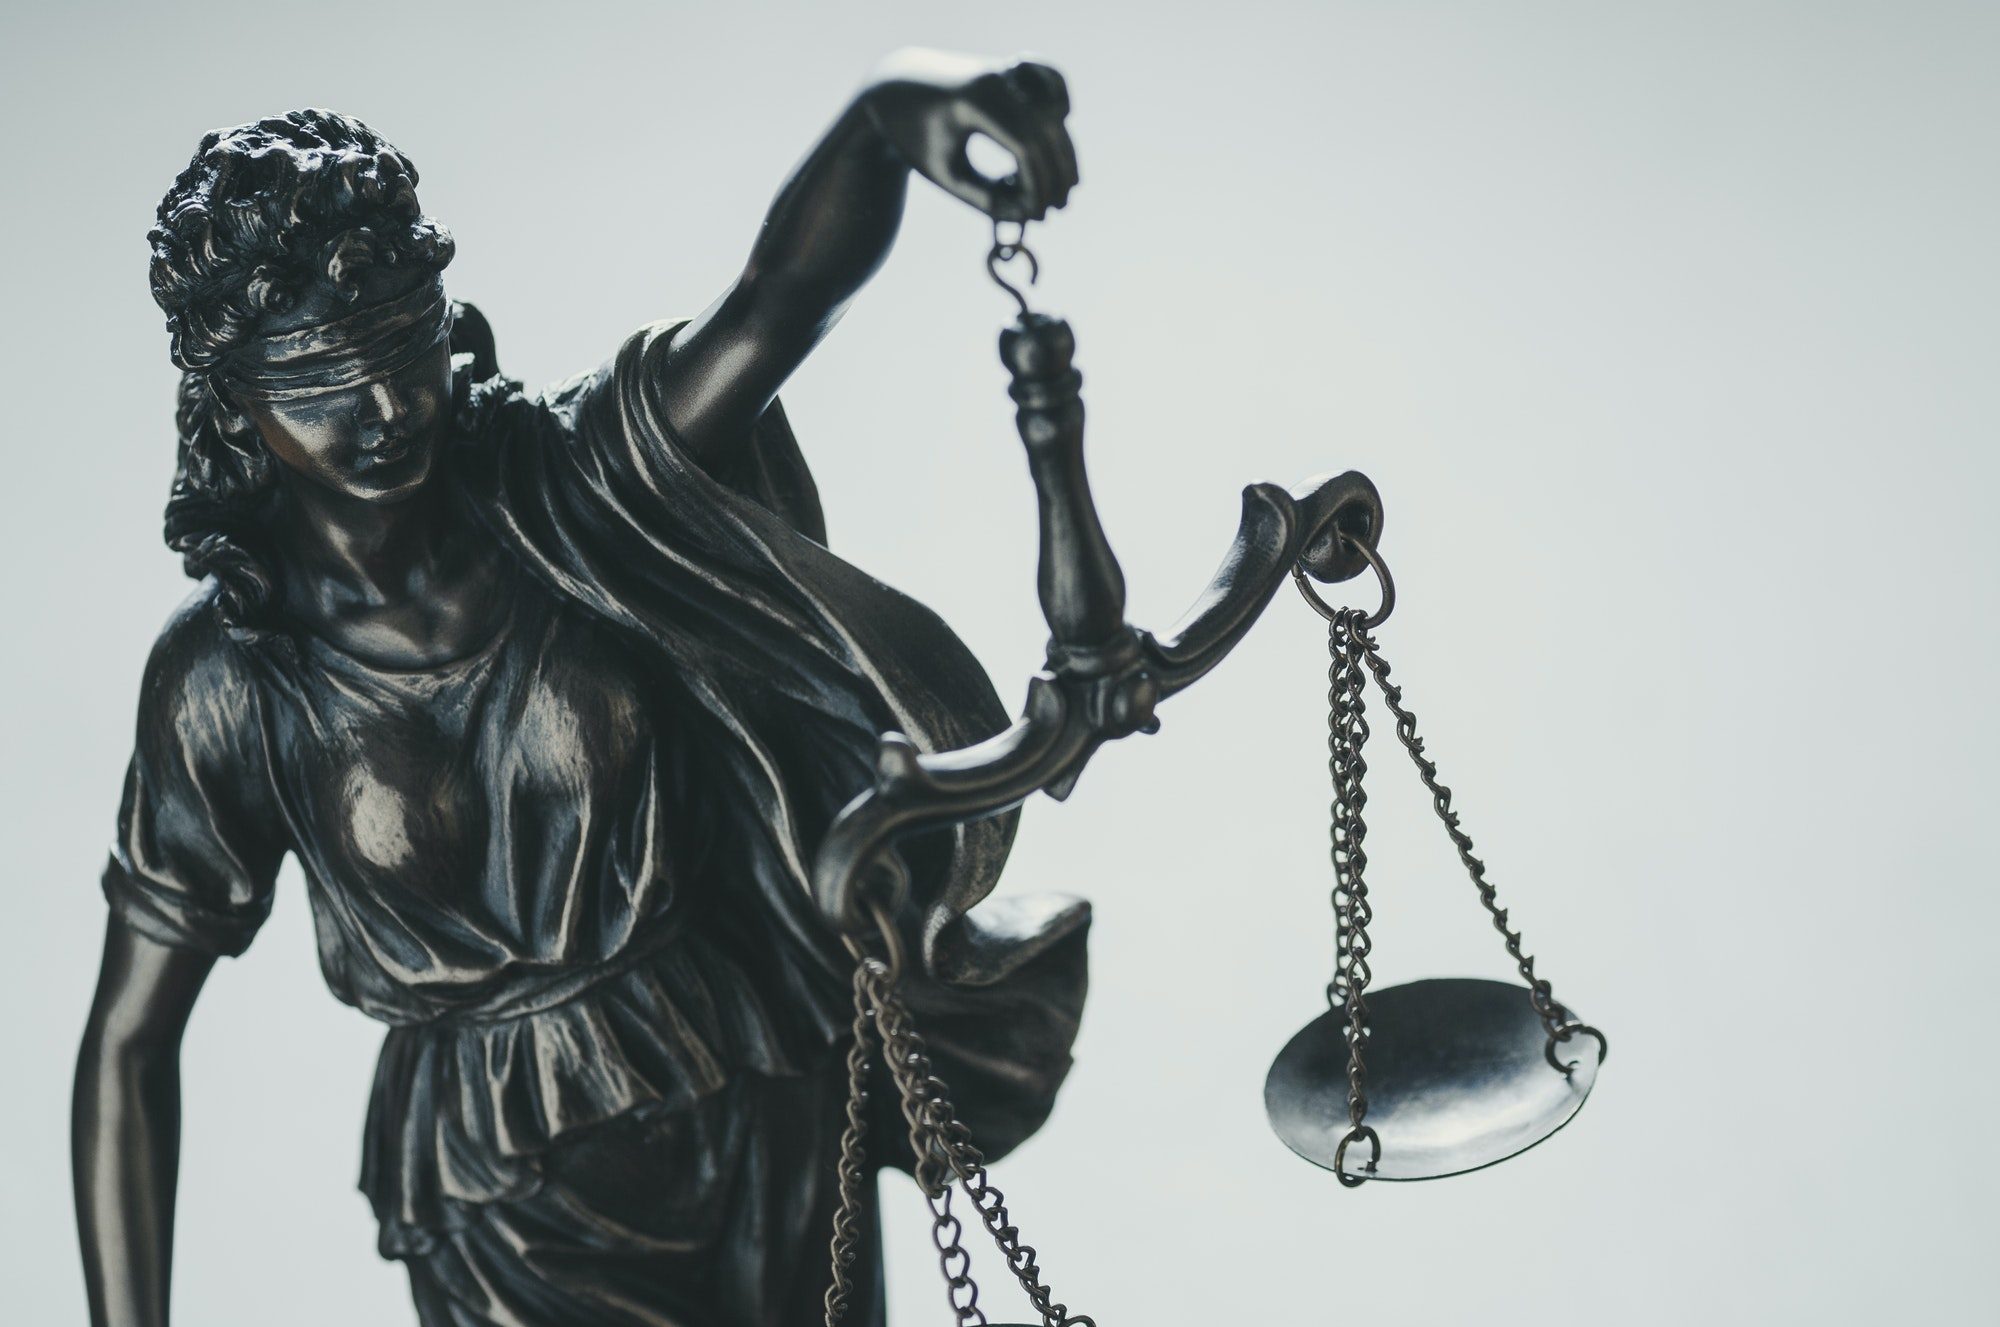 Statue of Justice holding aloft scales